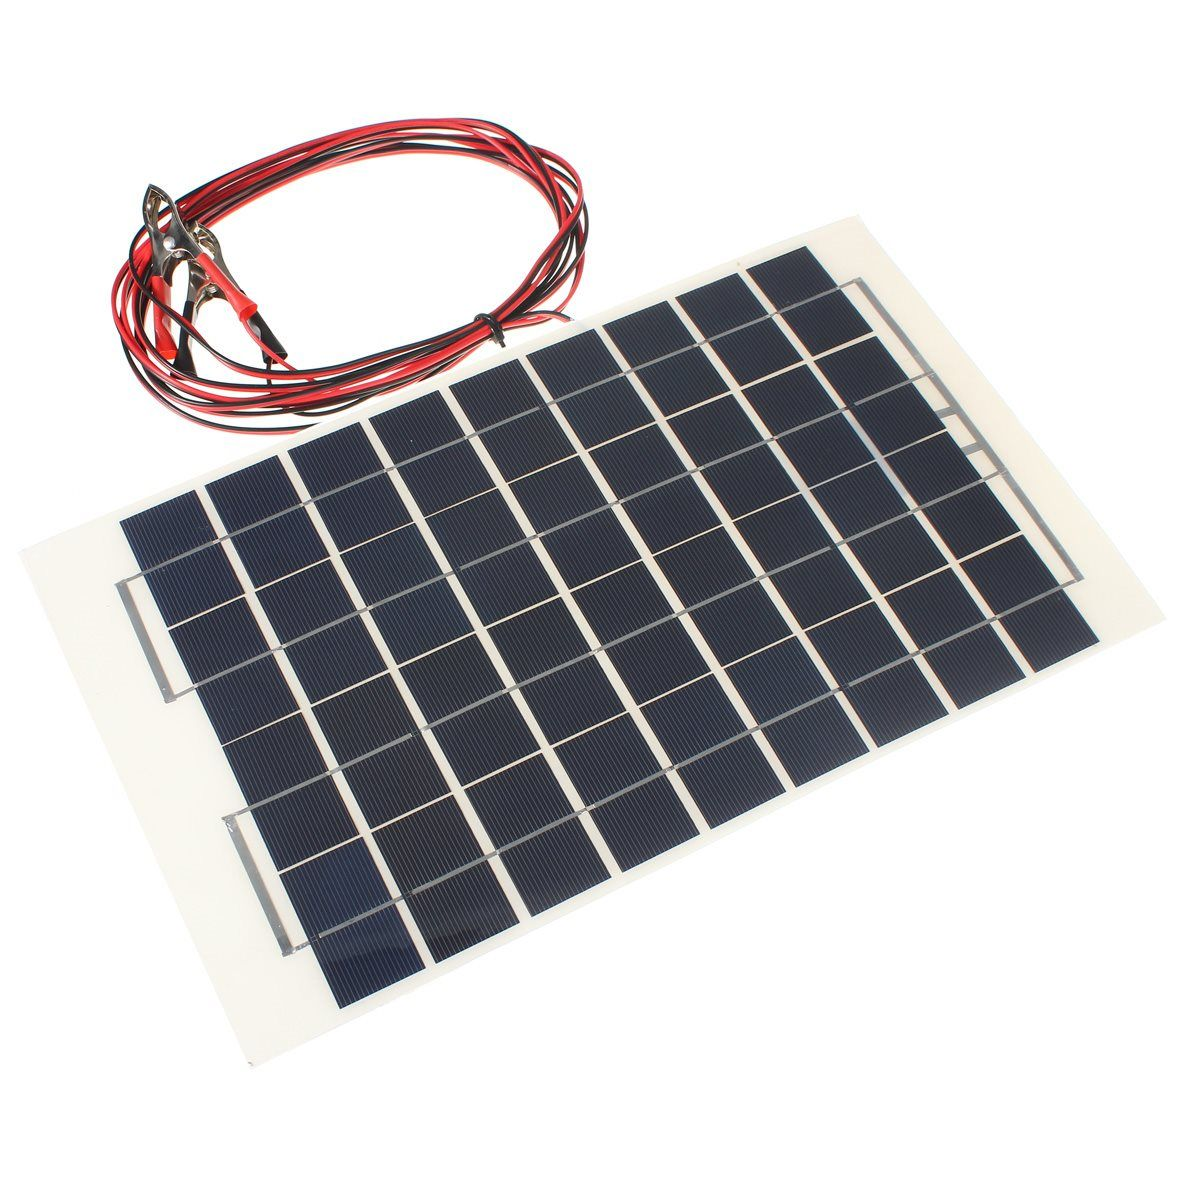 12v 10w Solar Panel Polycrystalline Cells Diy Solar Module Transparent Epoxy Resin With Block Diode 2 Alligator Clips 4m Cable